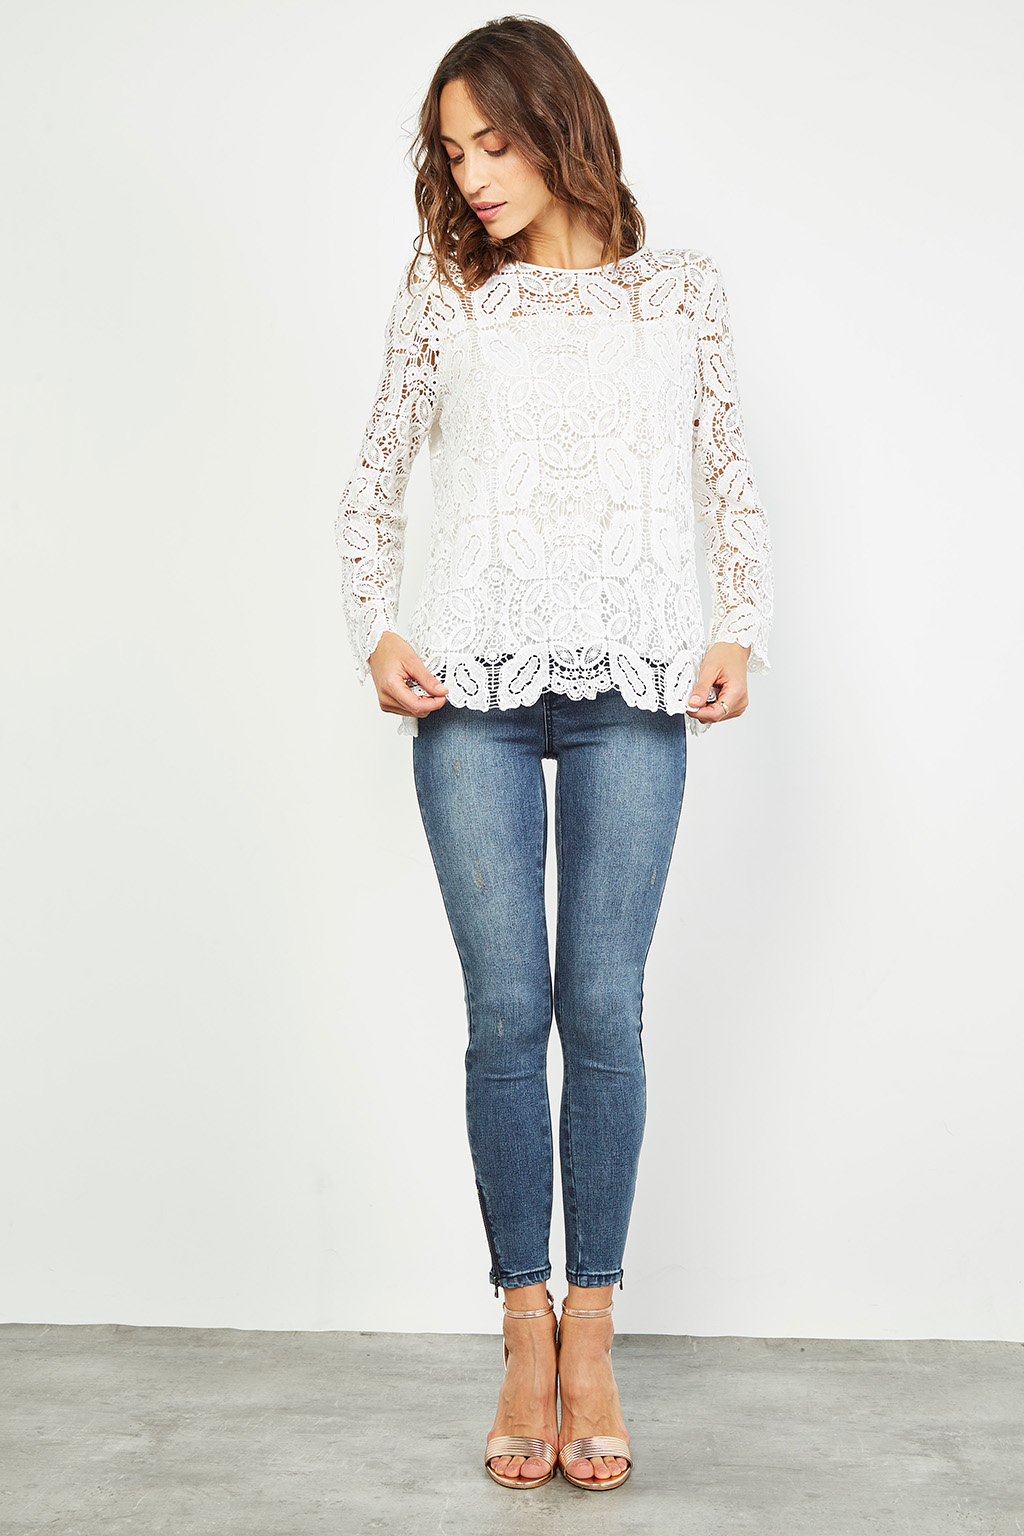 Blouse en guipure - #collectionIRL